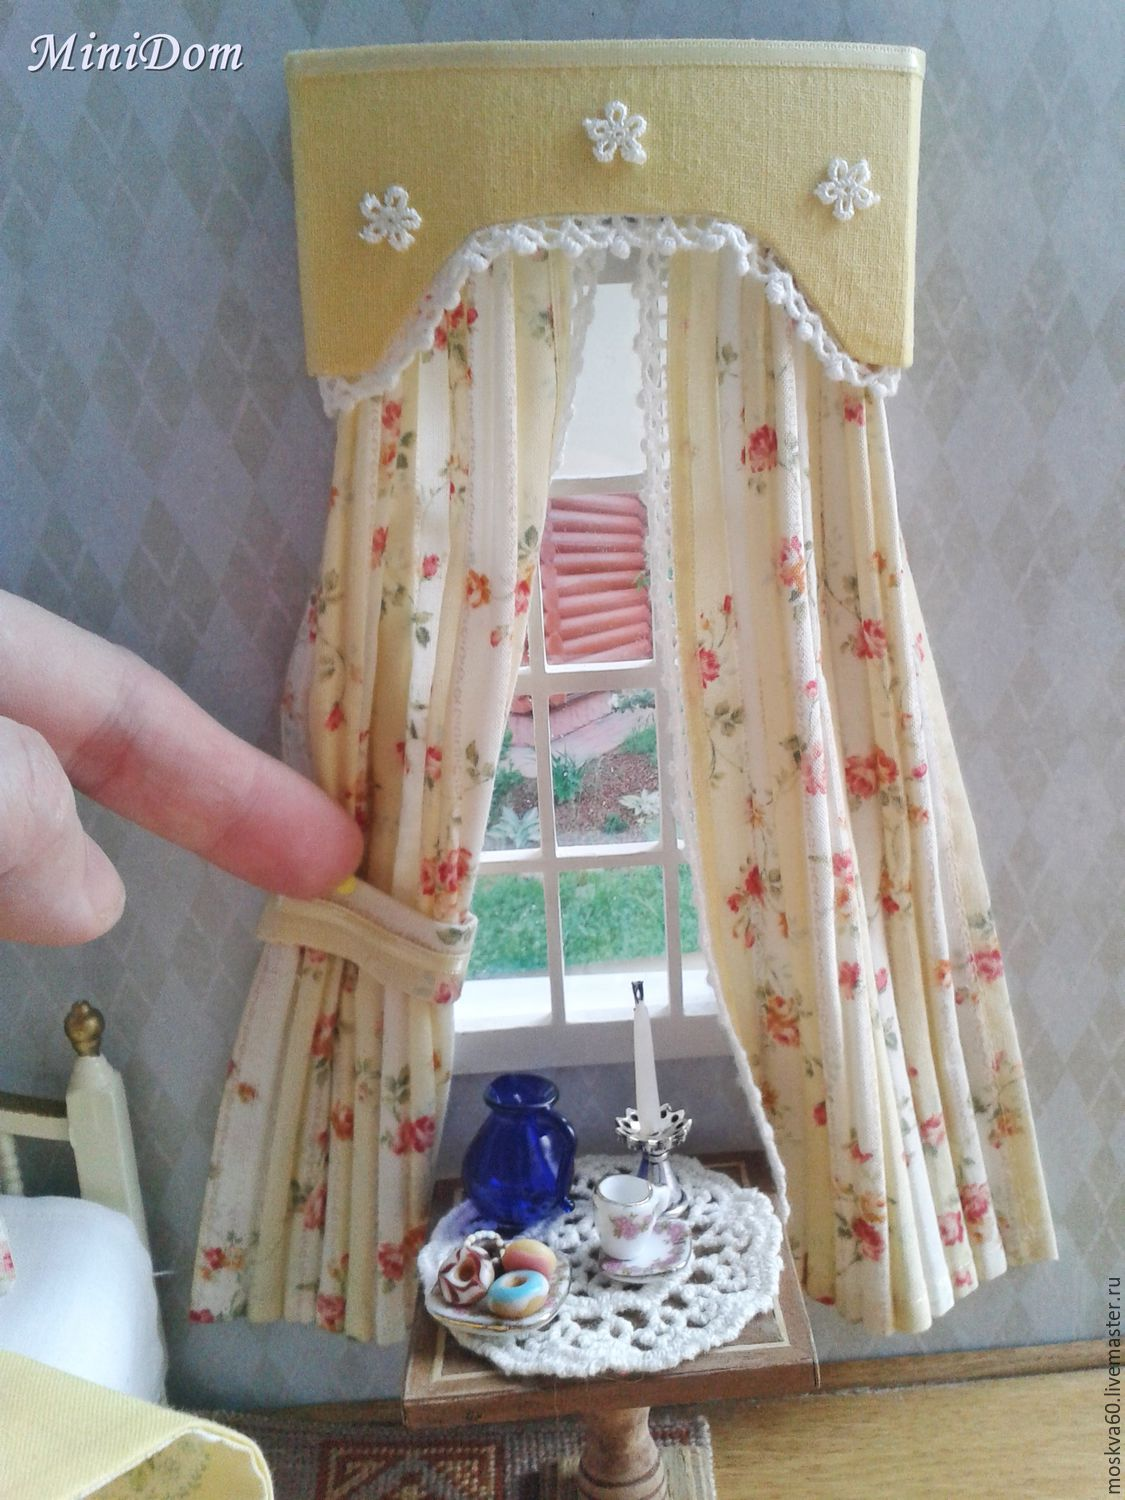 ... Dollhouse Miniature For Dolls And Toys 1 12 Scale Miniature For  Dollhouse Furniture For Dollhouse Handmade ...